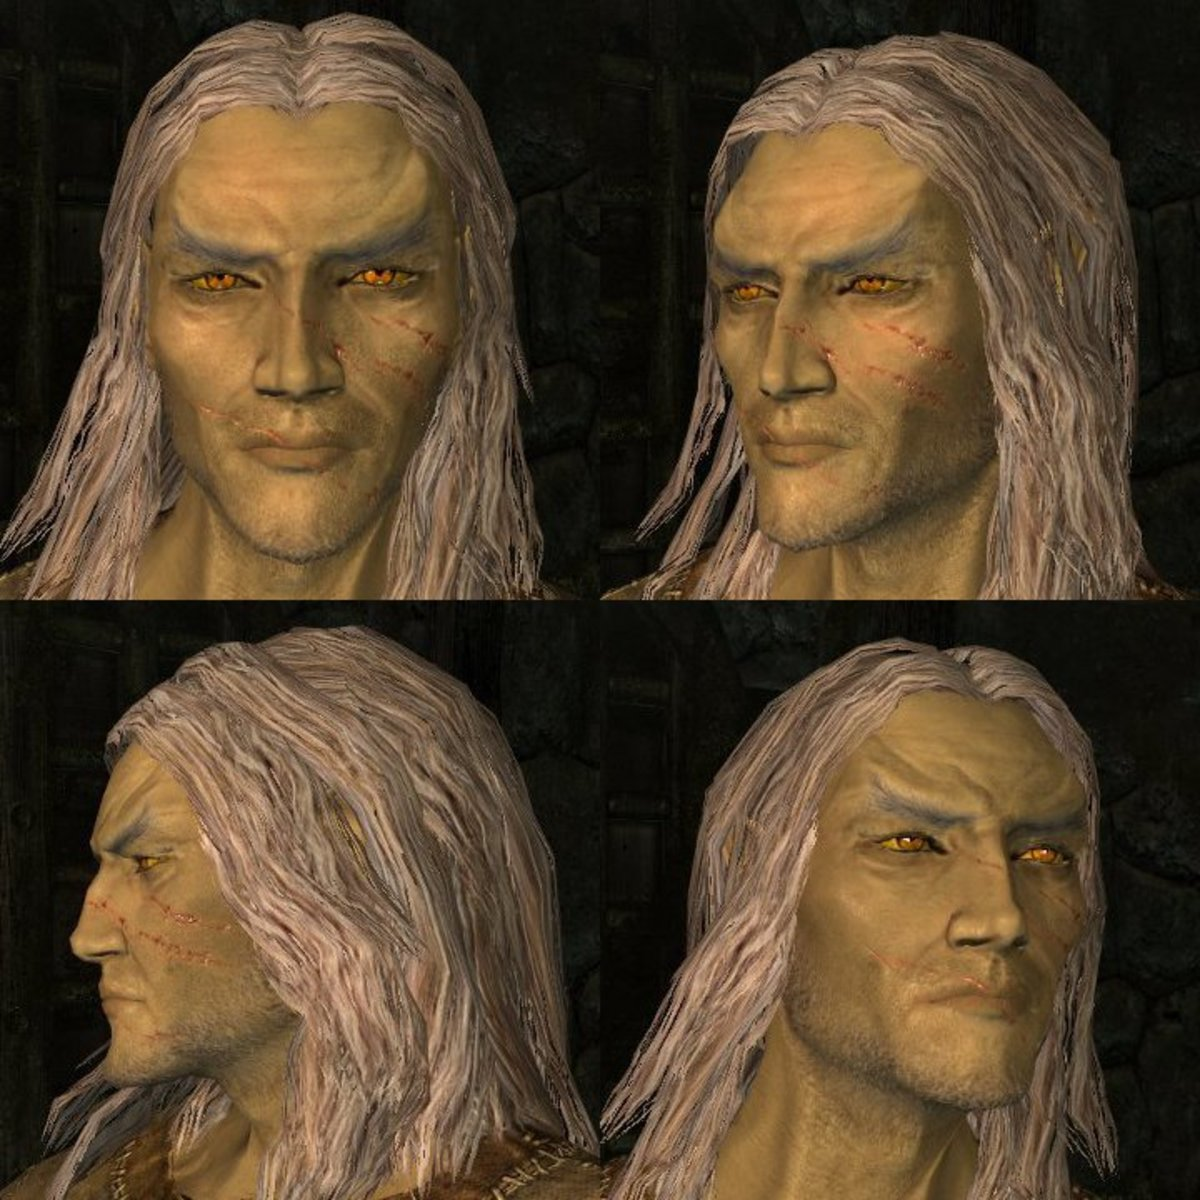 Some races have features that are difficult to modify. Male High Elves, for example, have pronounced chins and eyebrows. In cases like these, you have to build your character around existing limitations.